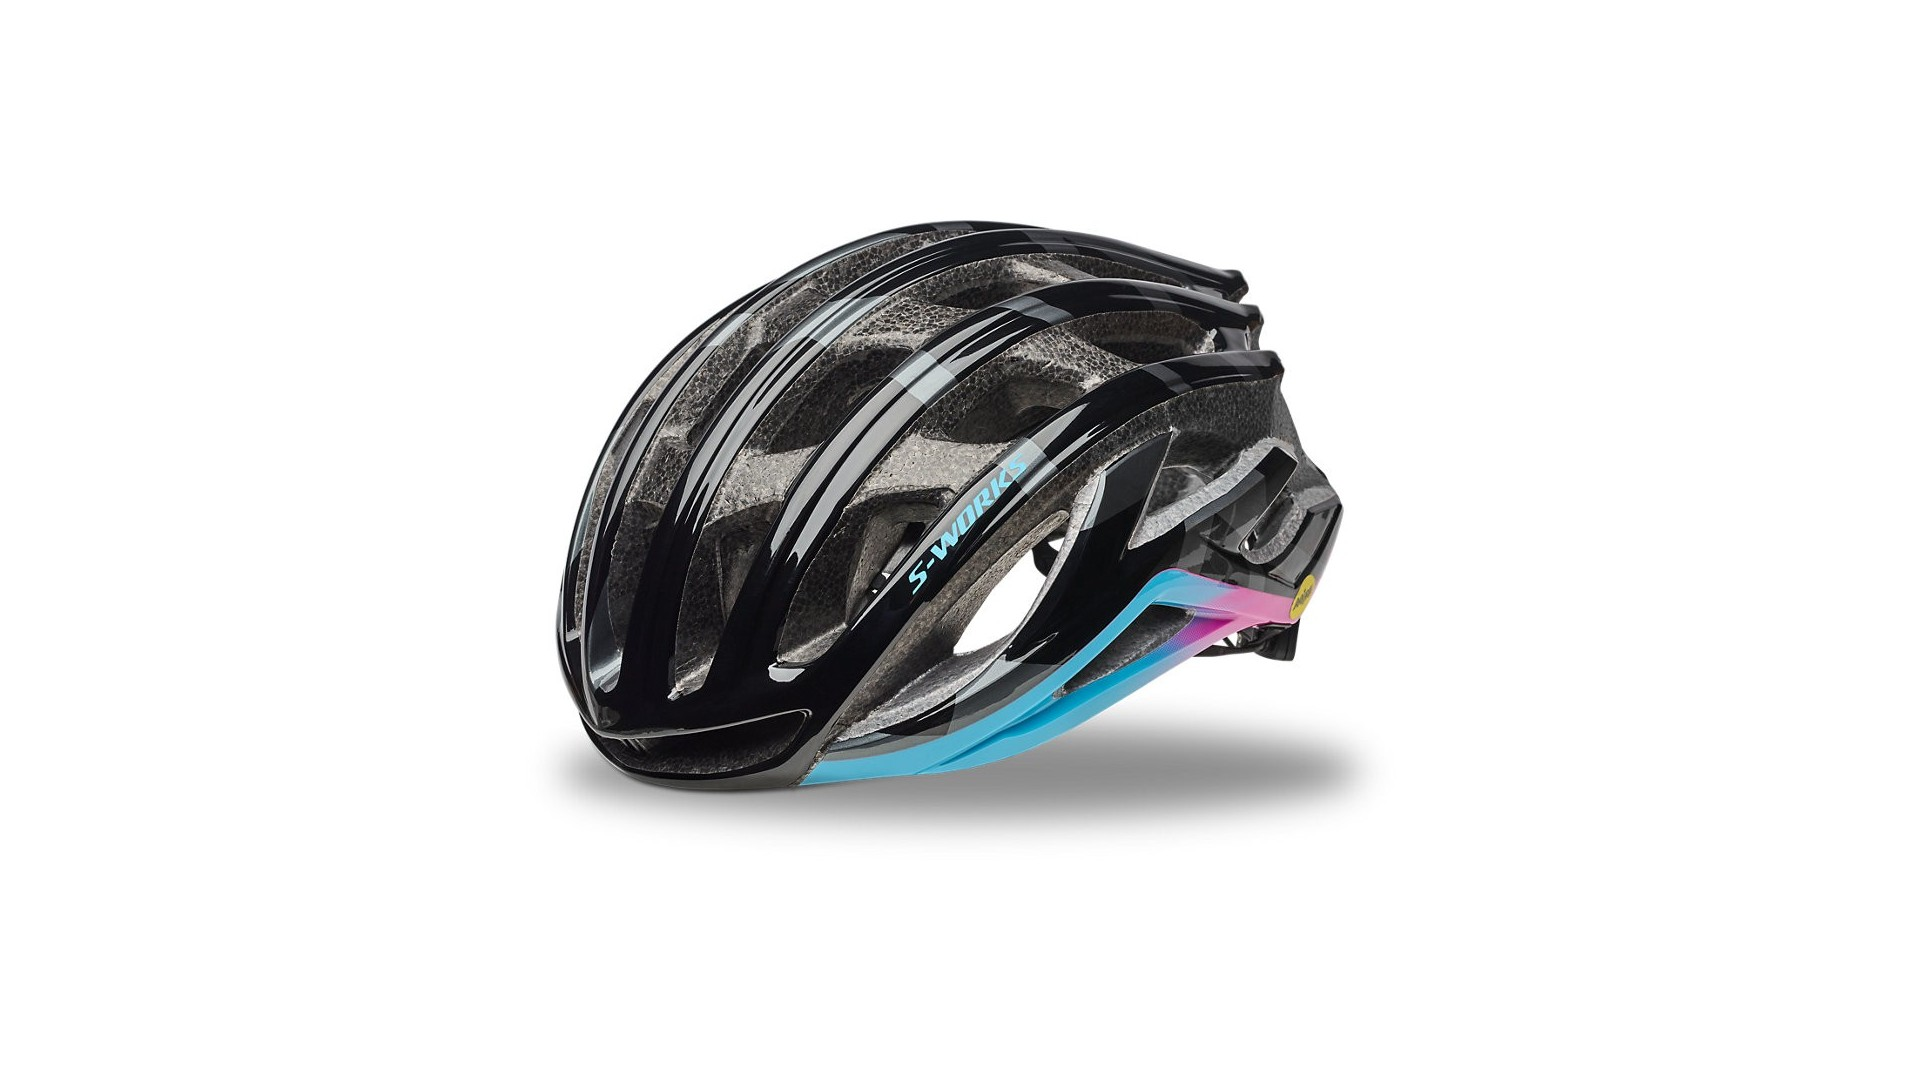 S-Works Prevail II Mips Mixtape Collections LTD Casco Ciclismo Carretera Specialized Negro/Azul/Rosa 1 IBKBike.es